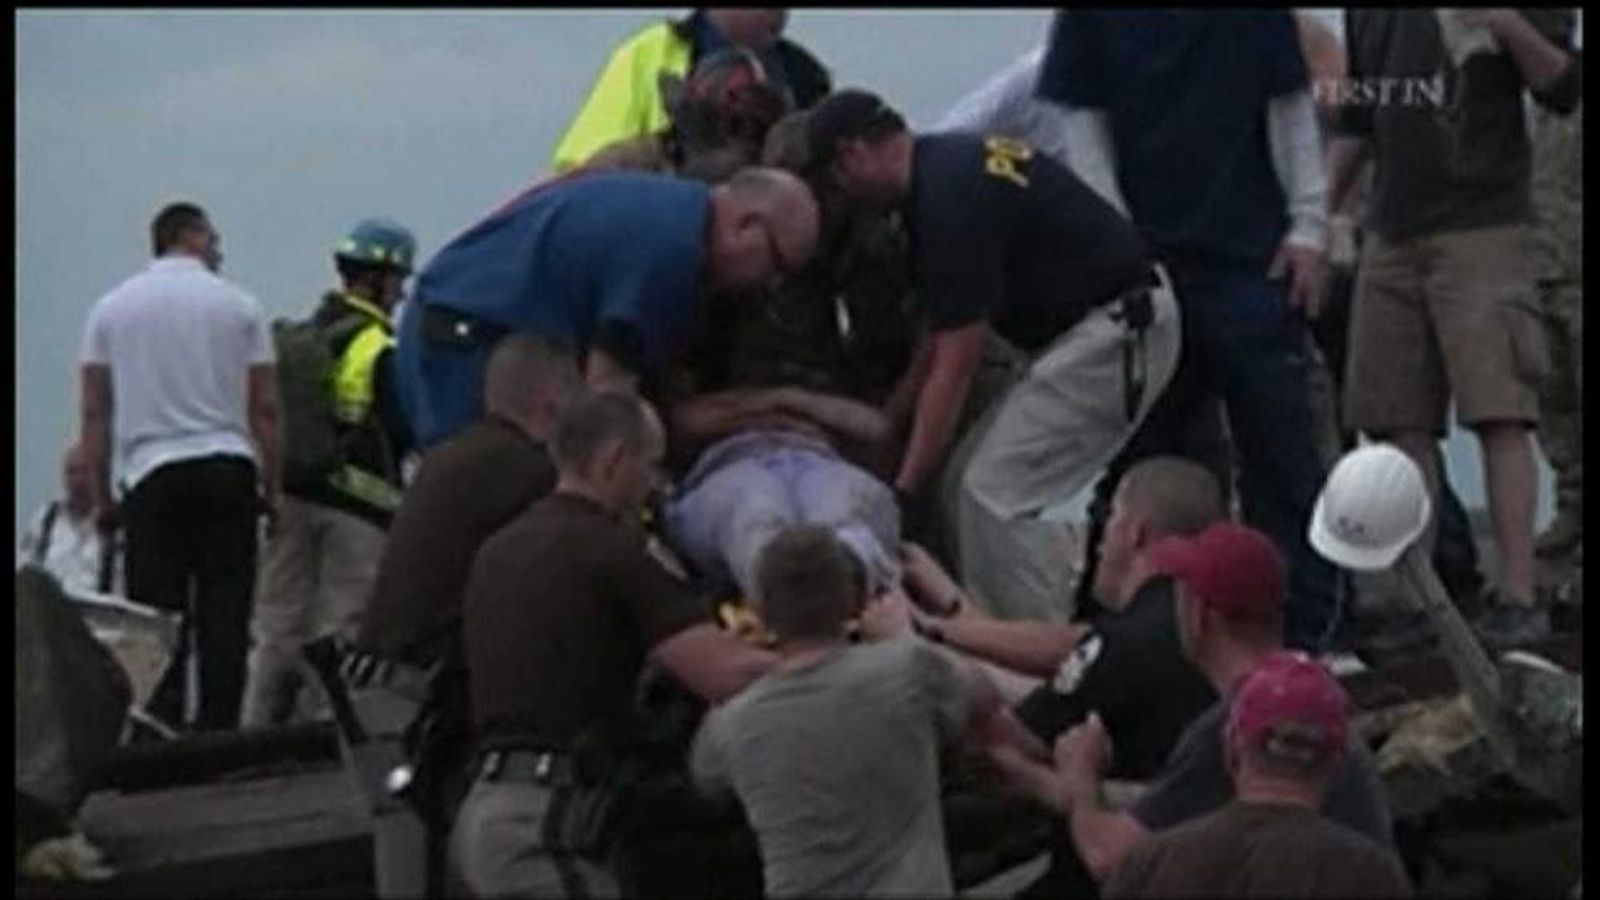 Survivor pulled from rubble of Moore City tornado